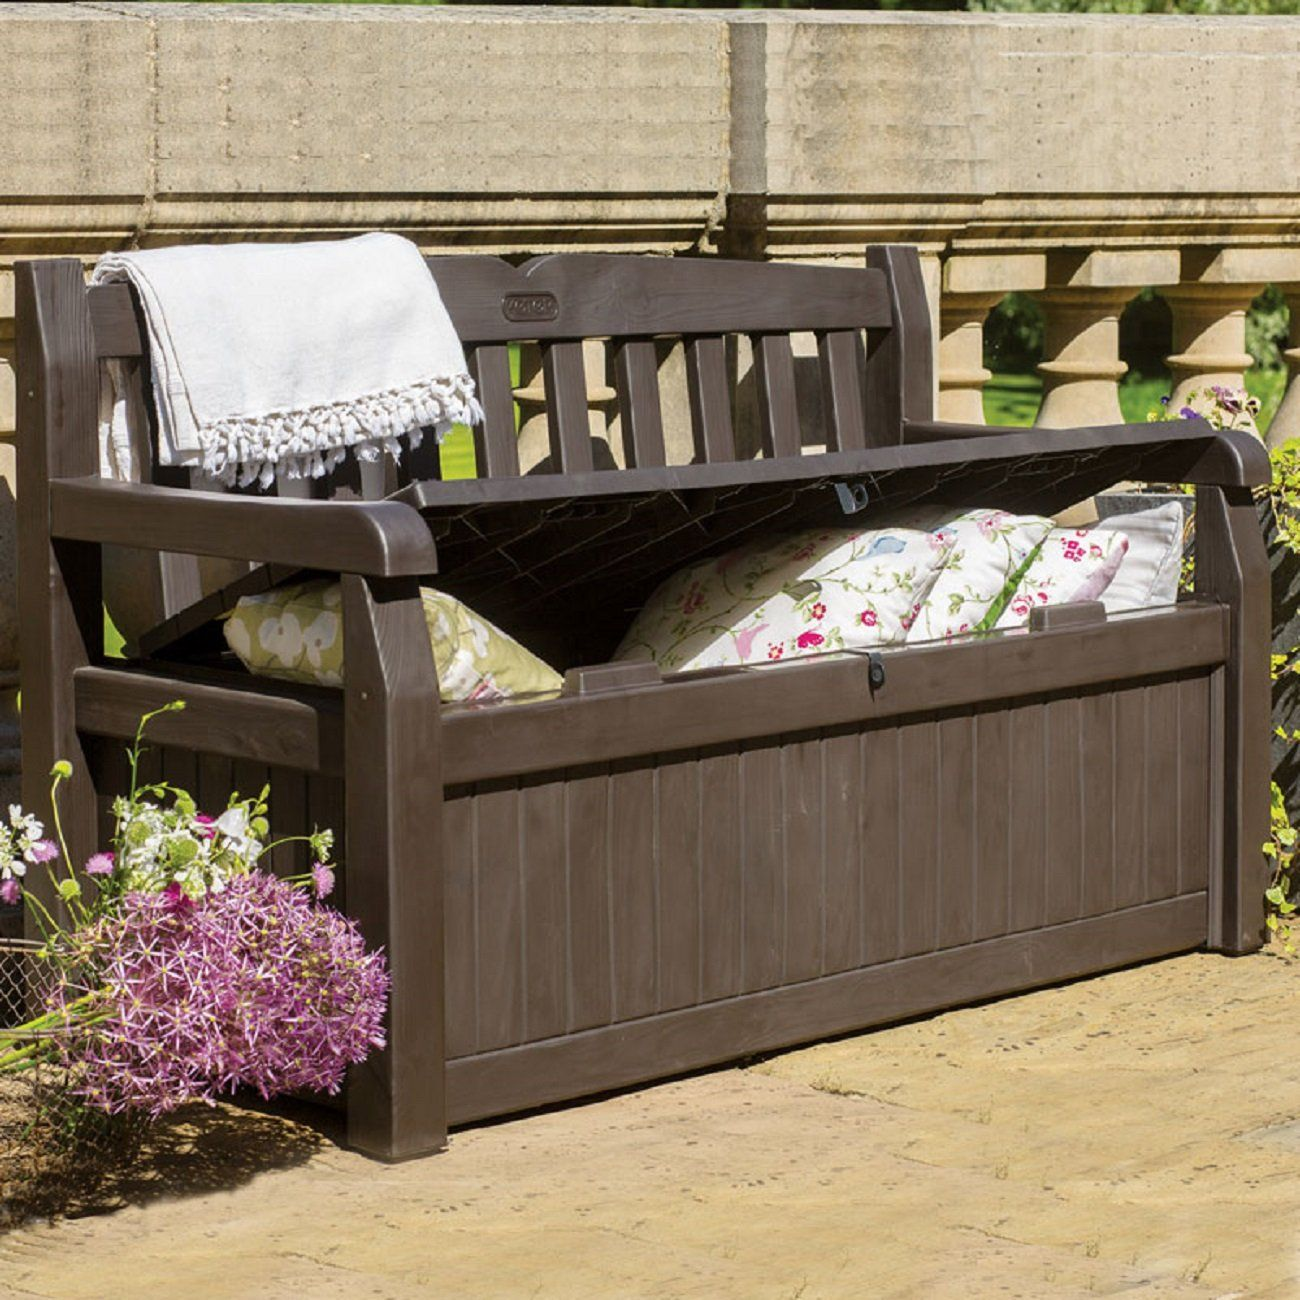 Robot Check Patio Storage Bench Patio Storage Garden Storage Bench